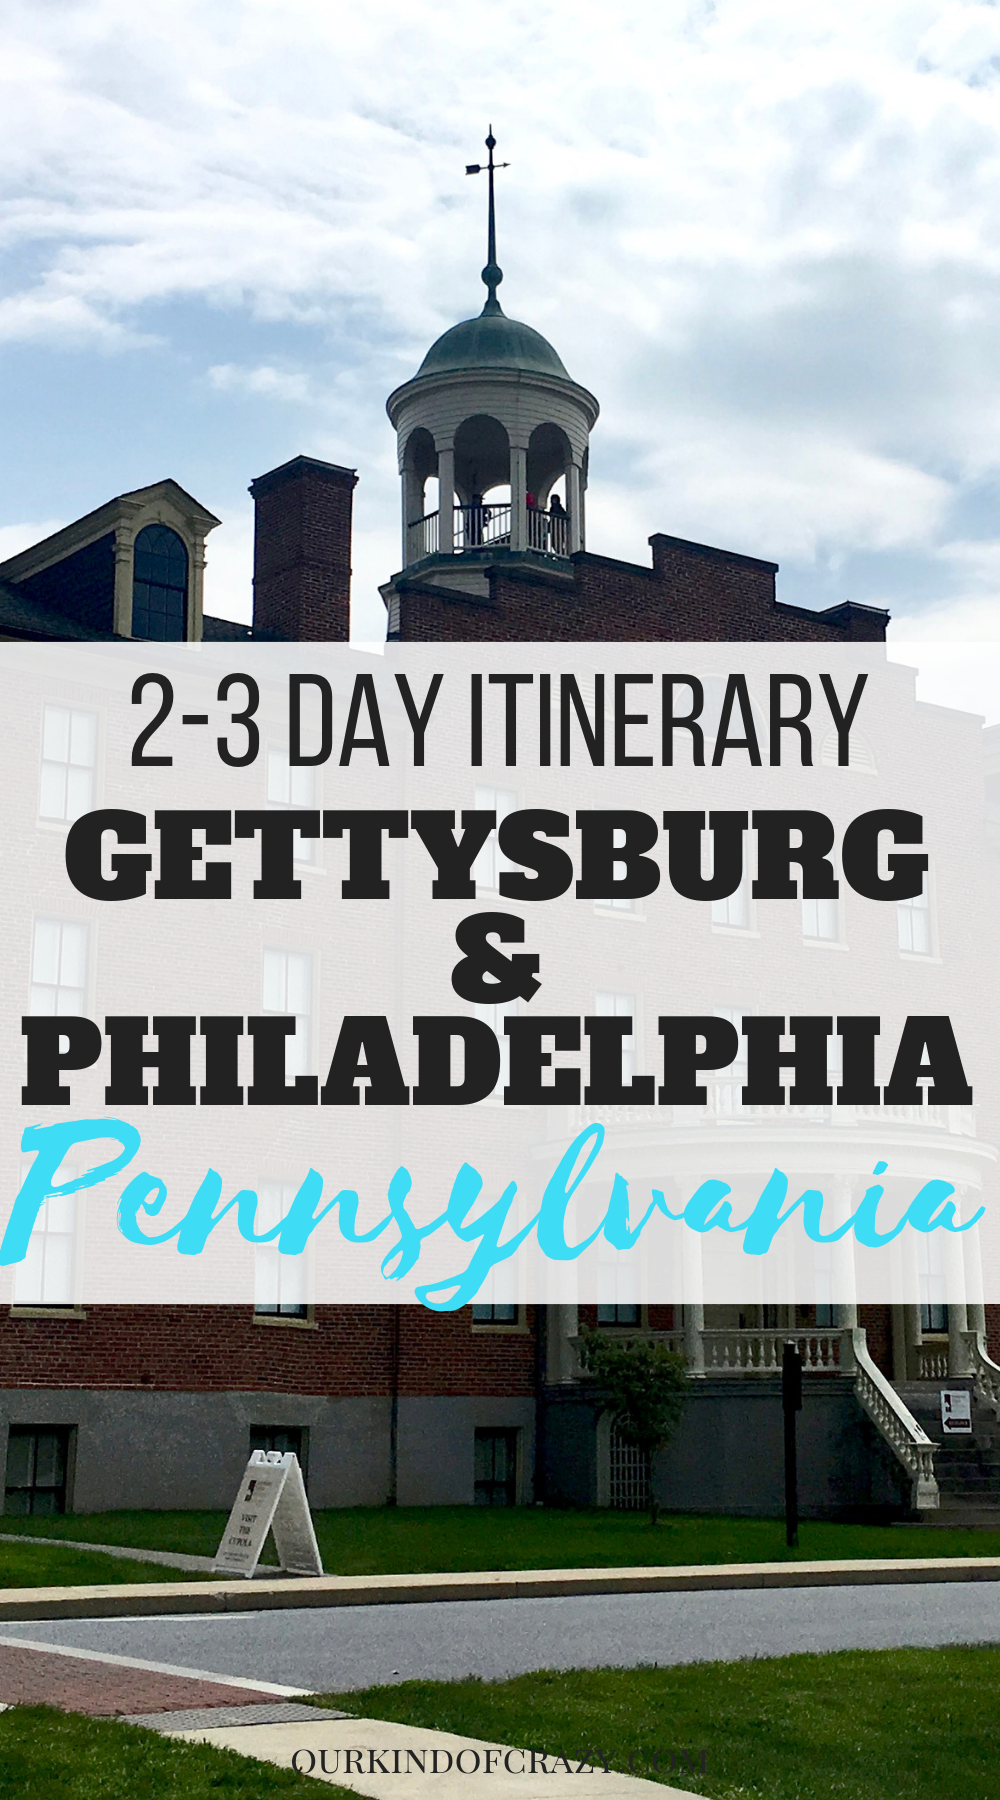 US History Tour of Gettysburg and Philadelphia - What to do in Gettysburg, What to do in Philly, Things to do in Philadelphia and Gettysburg